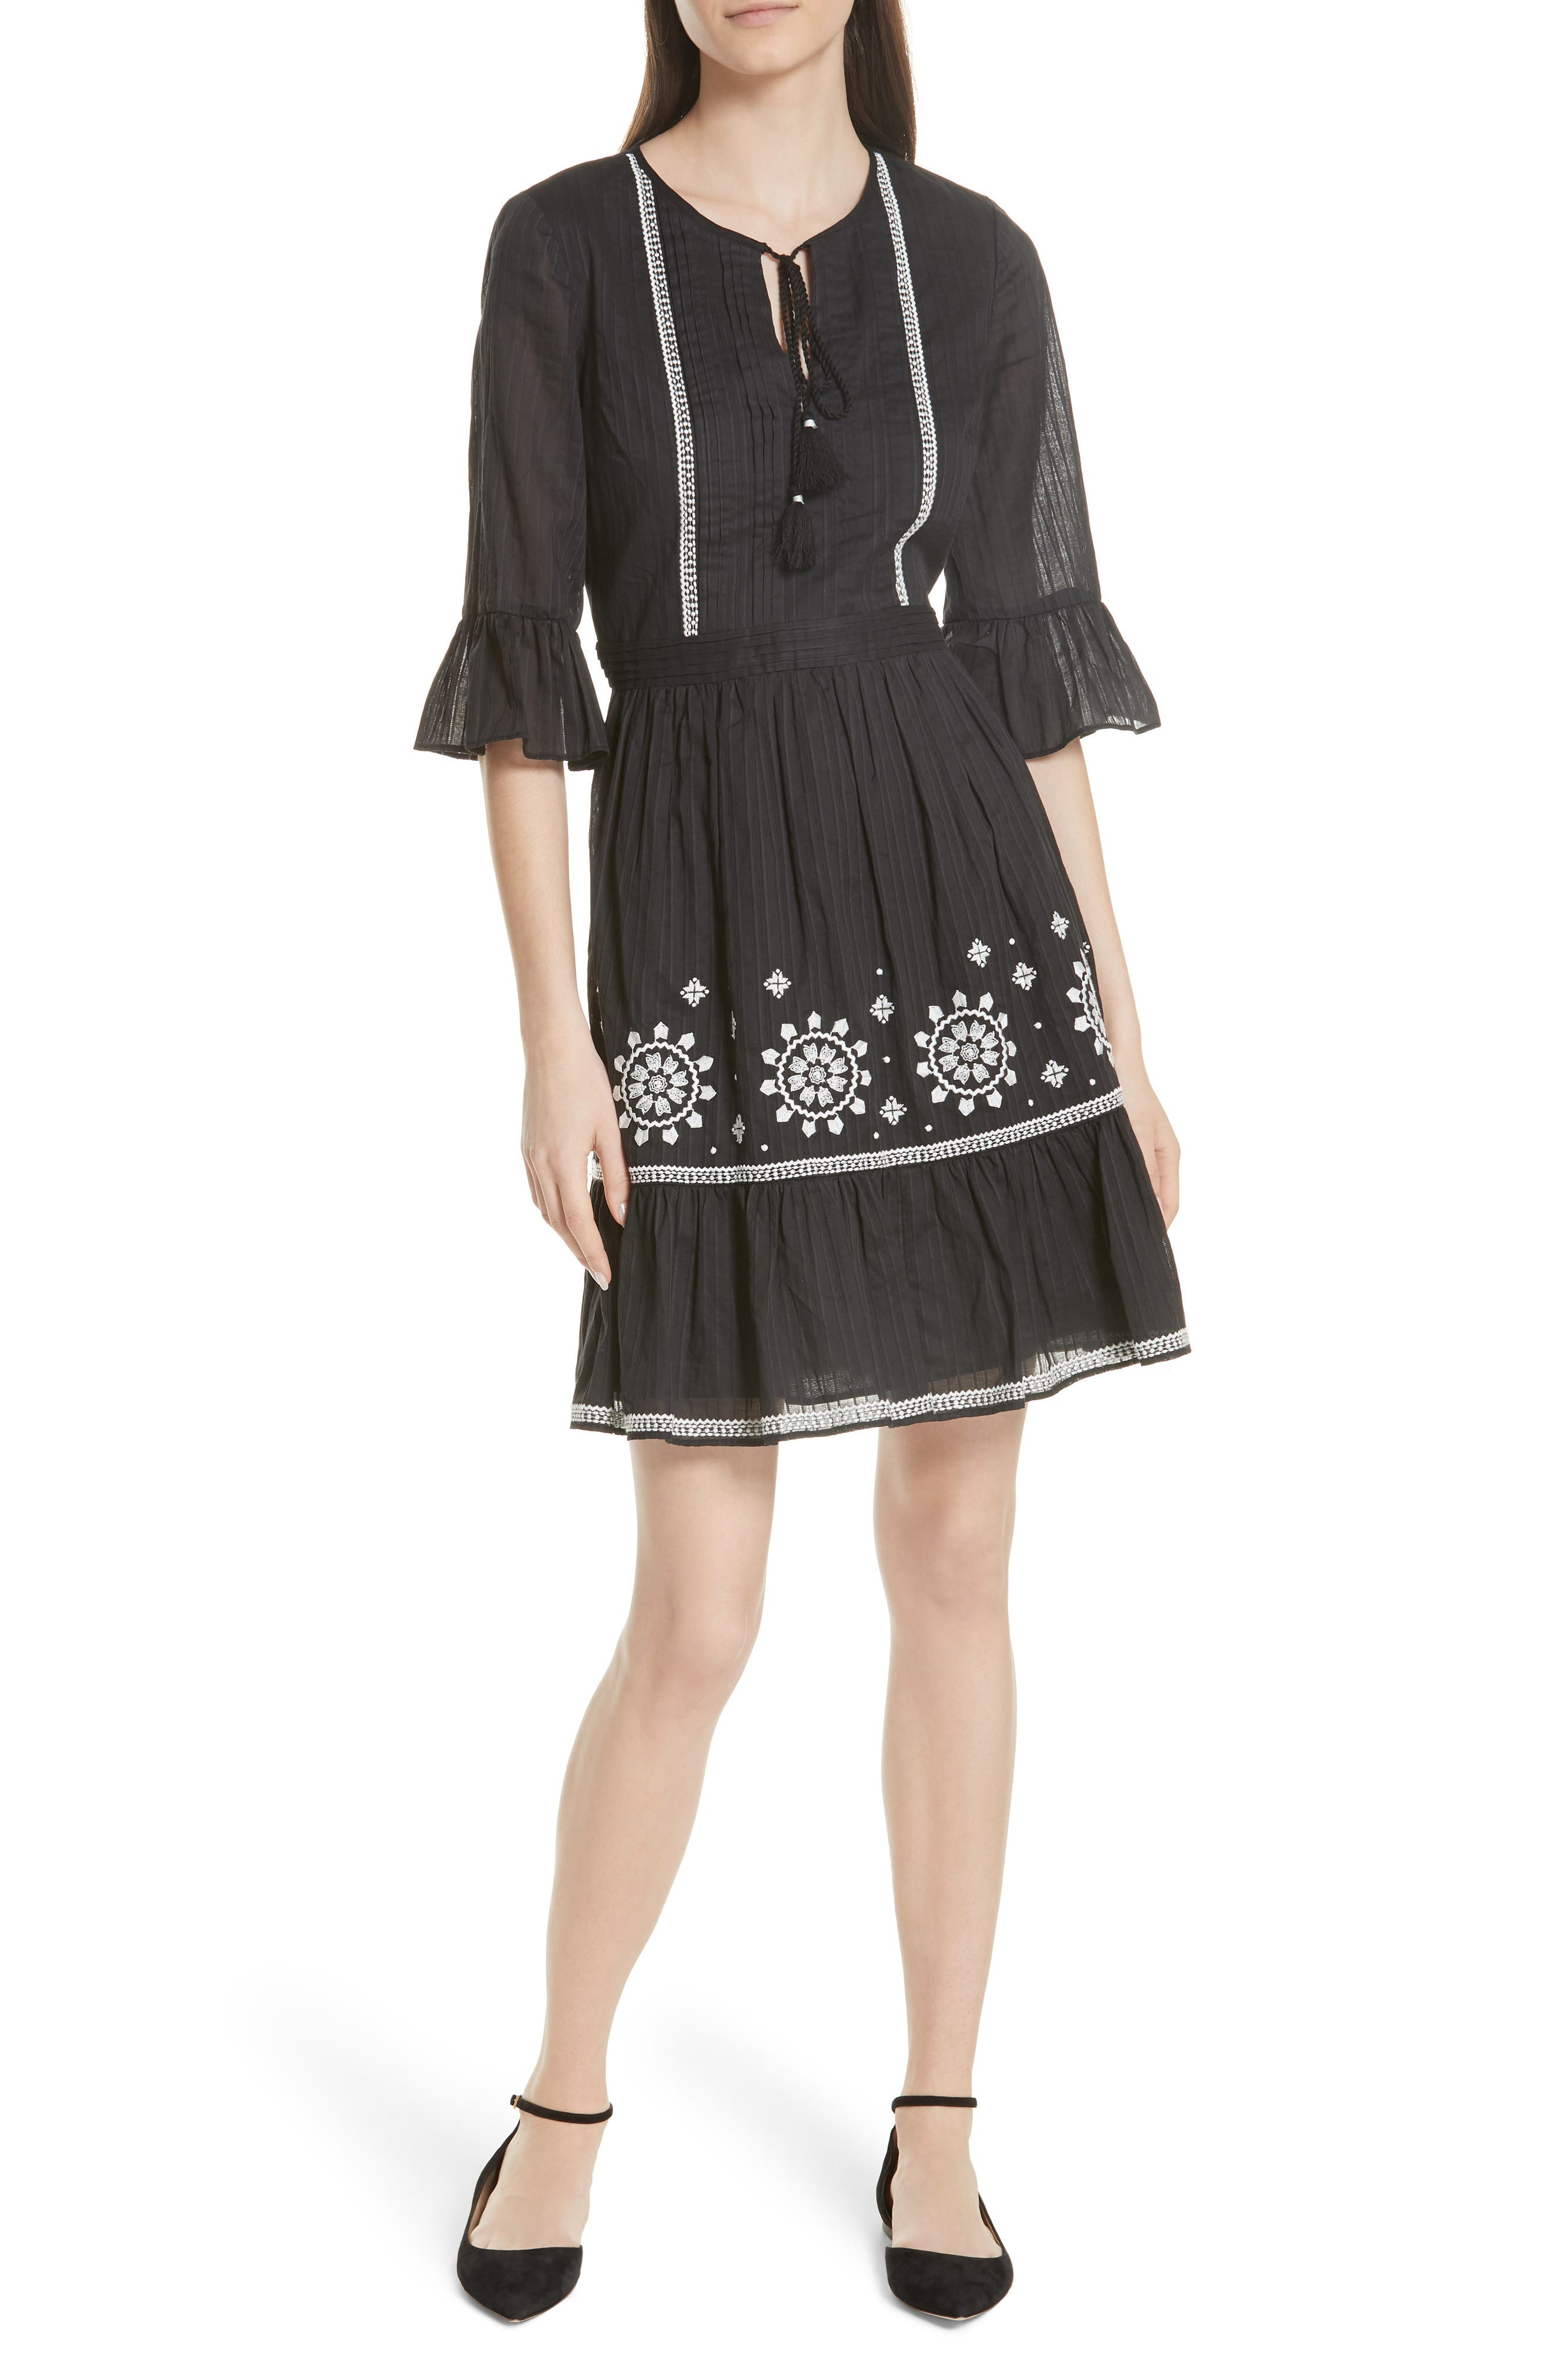 mosaic embroidered dress,                         Main,                         color, Black